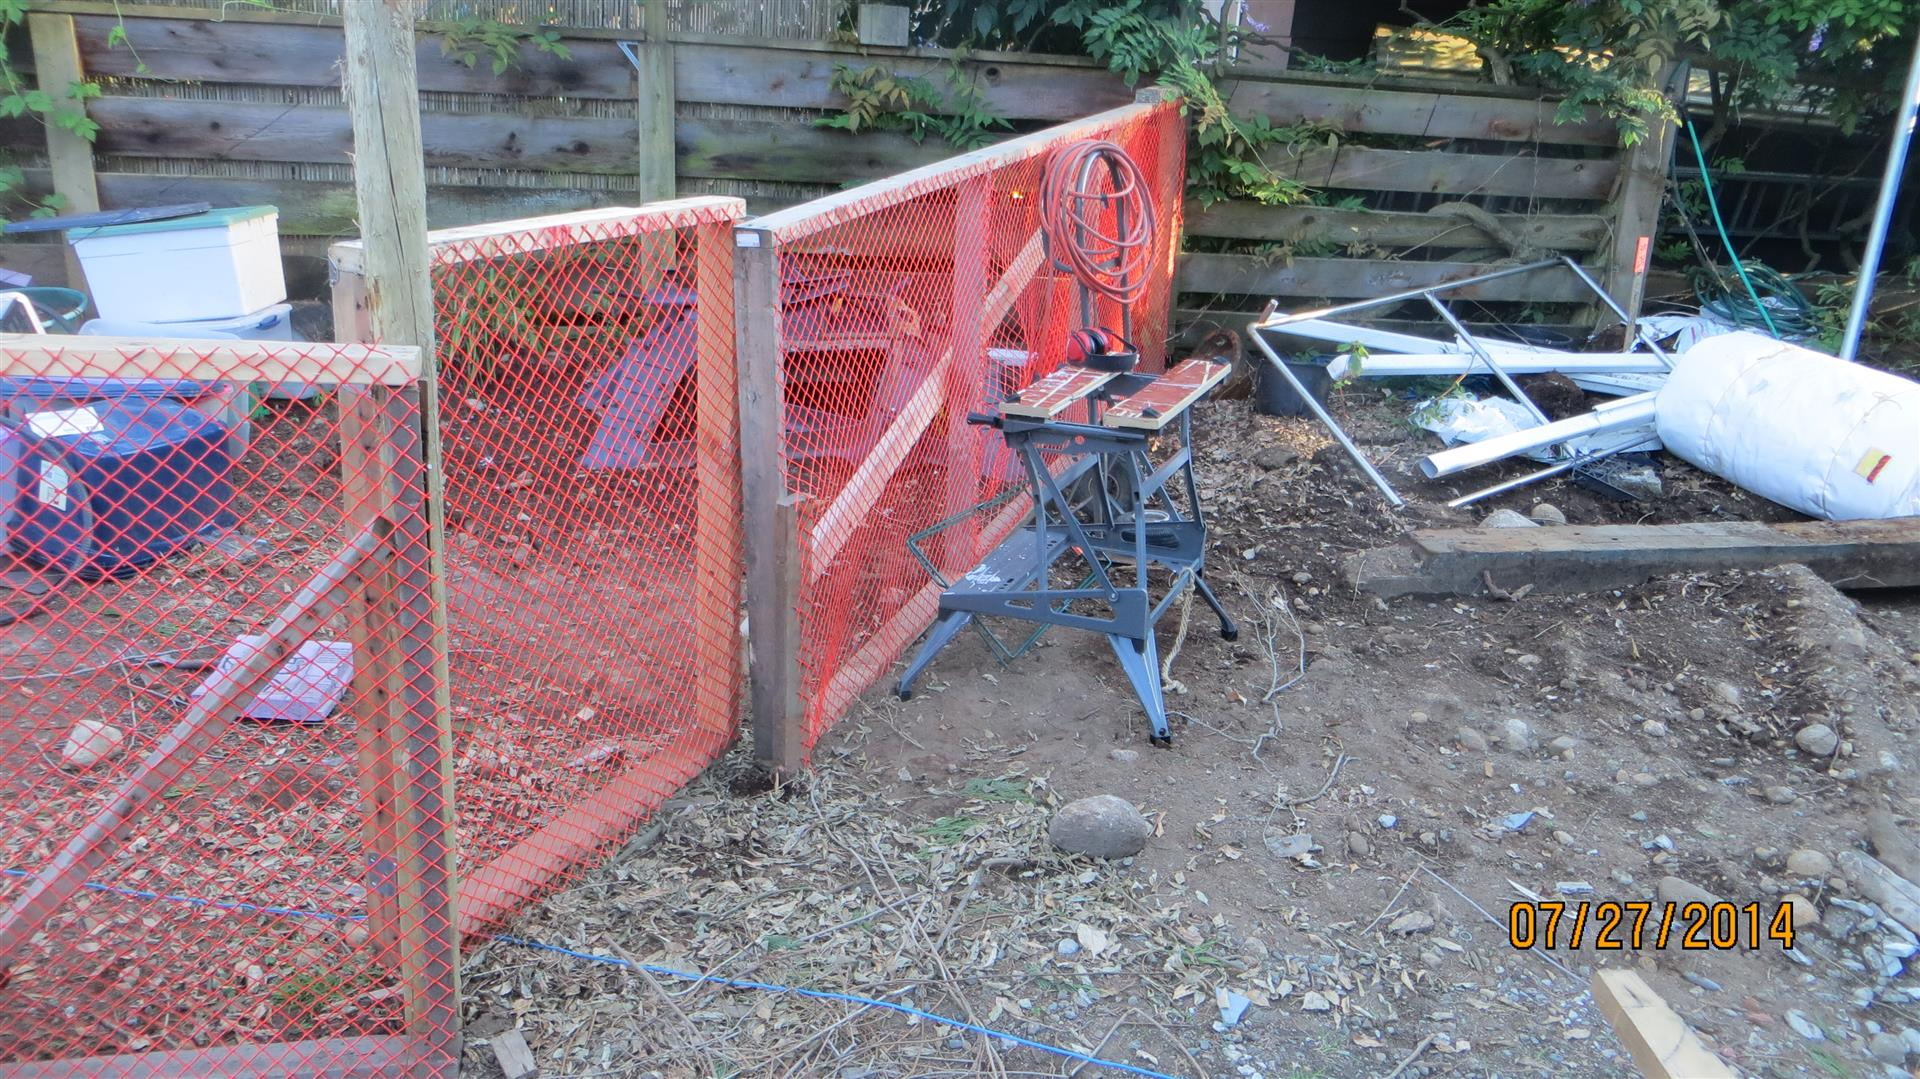 Final tree fencing panel and gate installed.